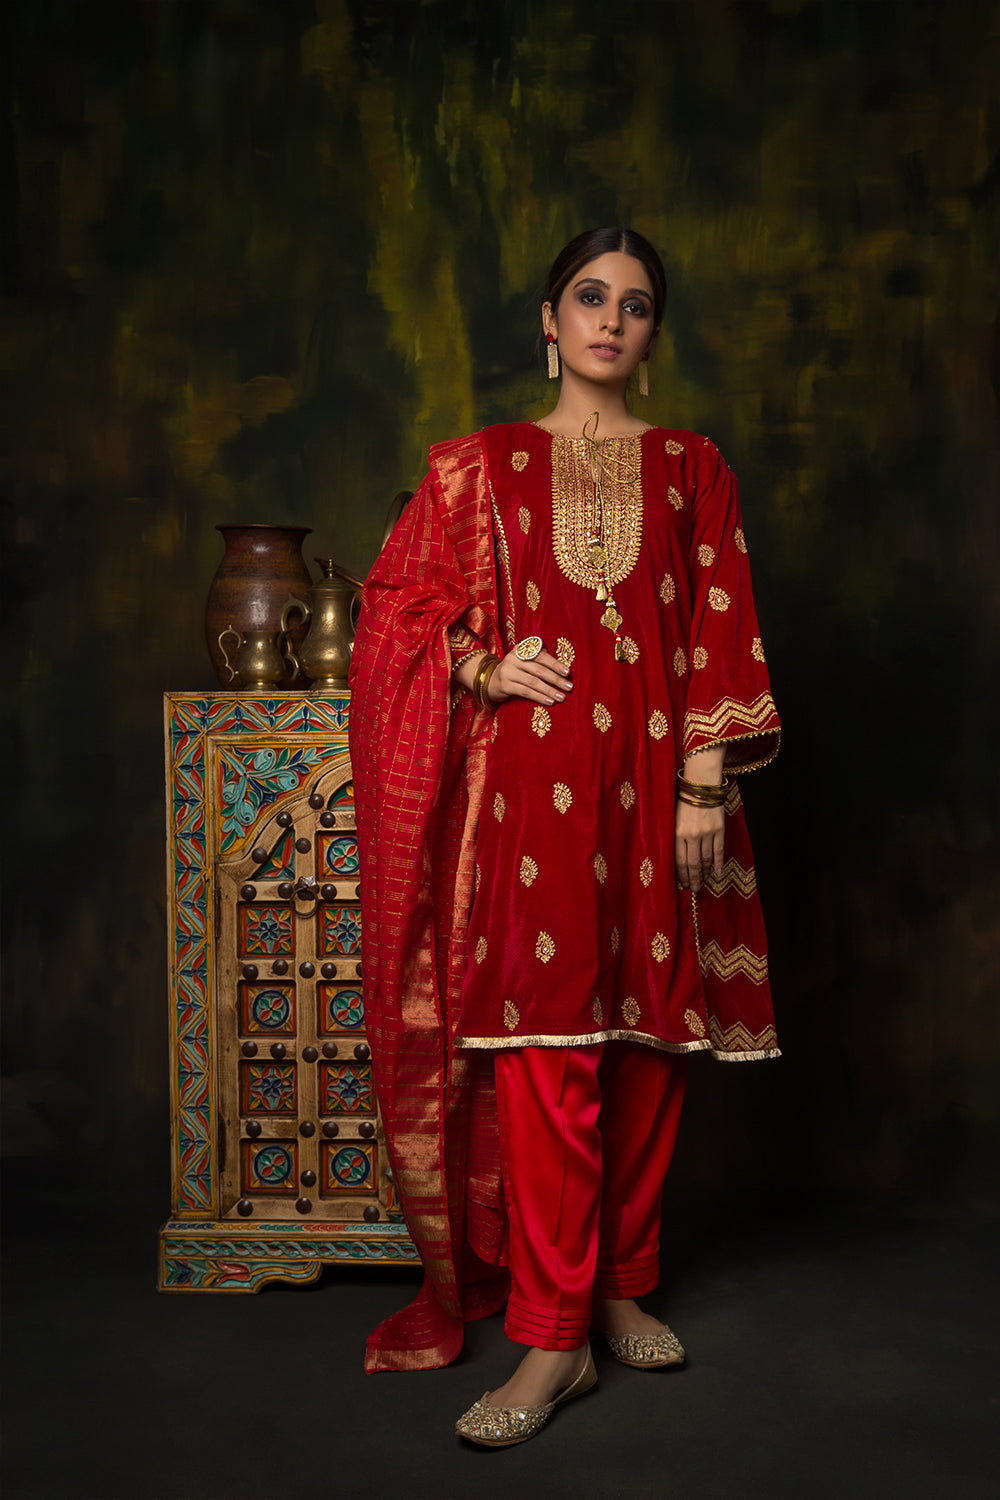 Ladies Formal 3 Piece Suit | Polyester Velvet Plain | Red | LDD-01378